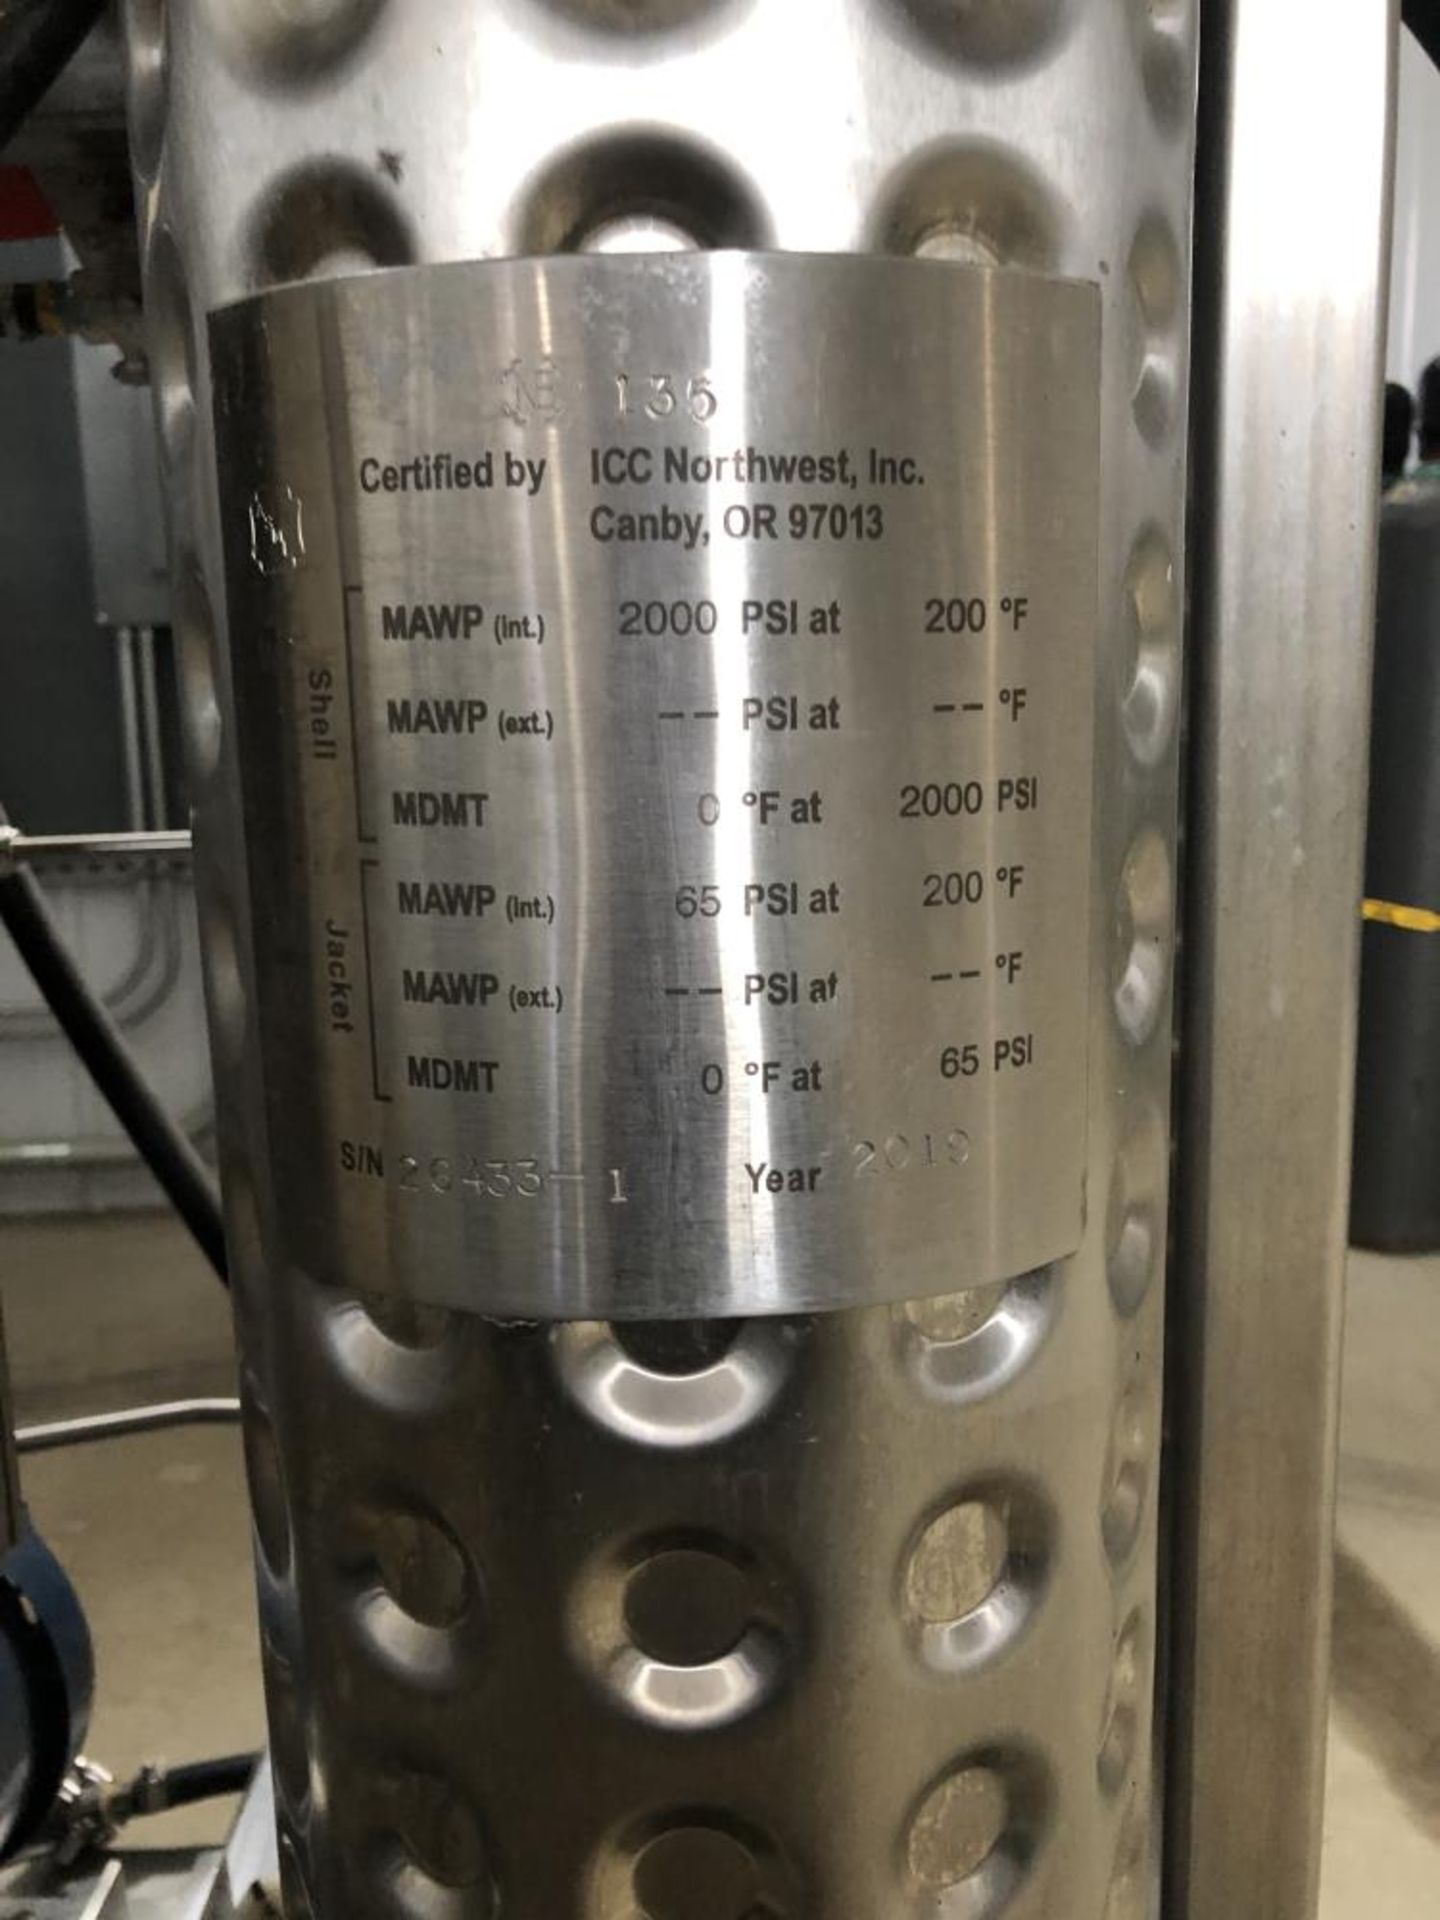 Used - MRX Supercritical CO2 Extractor Complete System. See details in description full inventory - Image 4 of 29